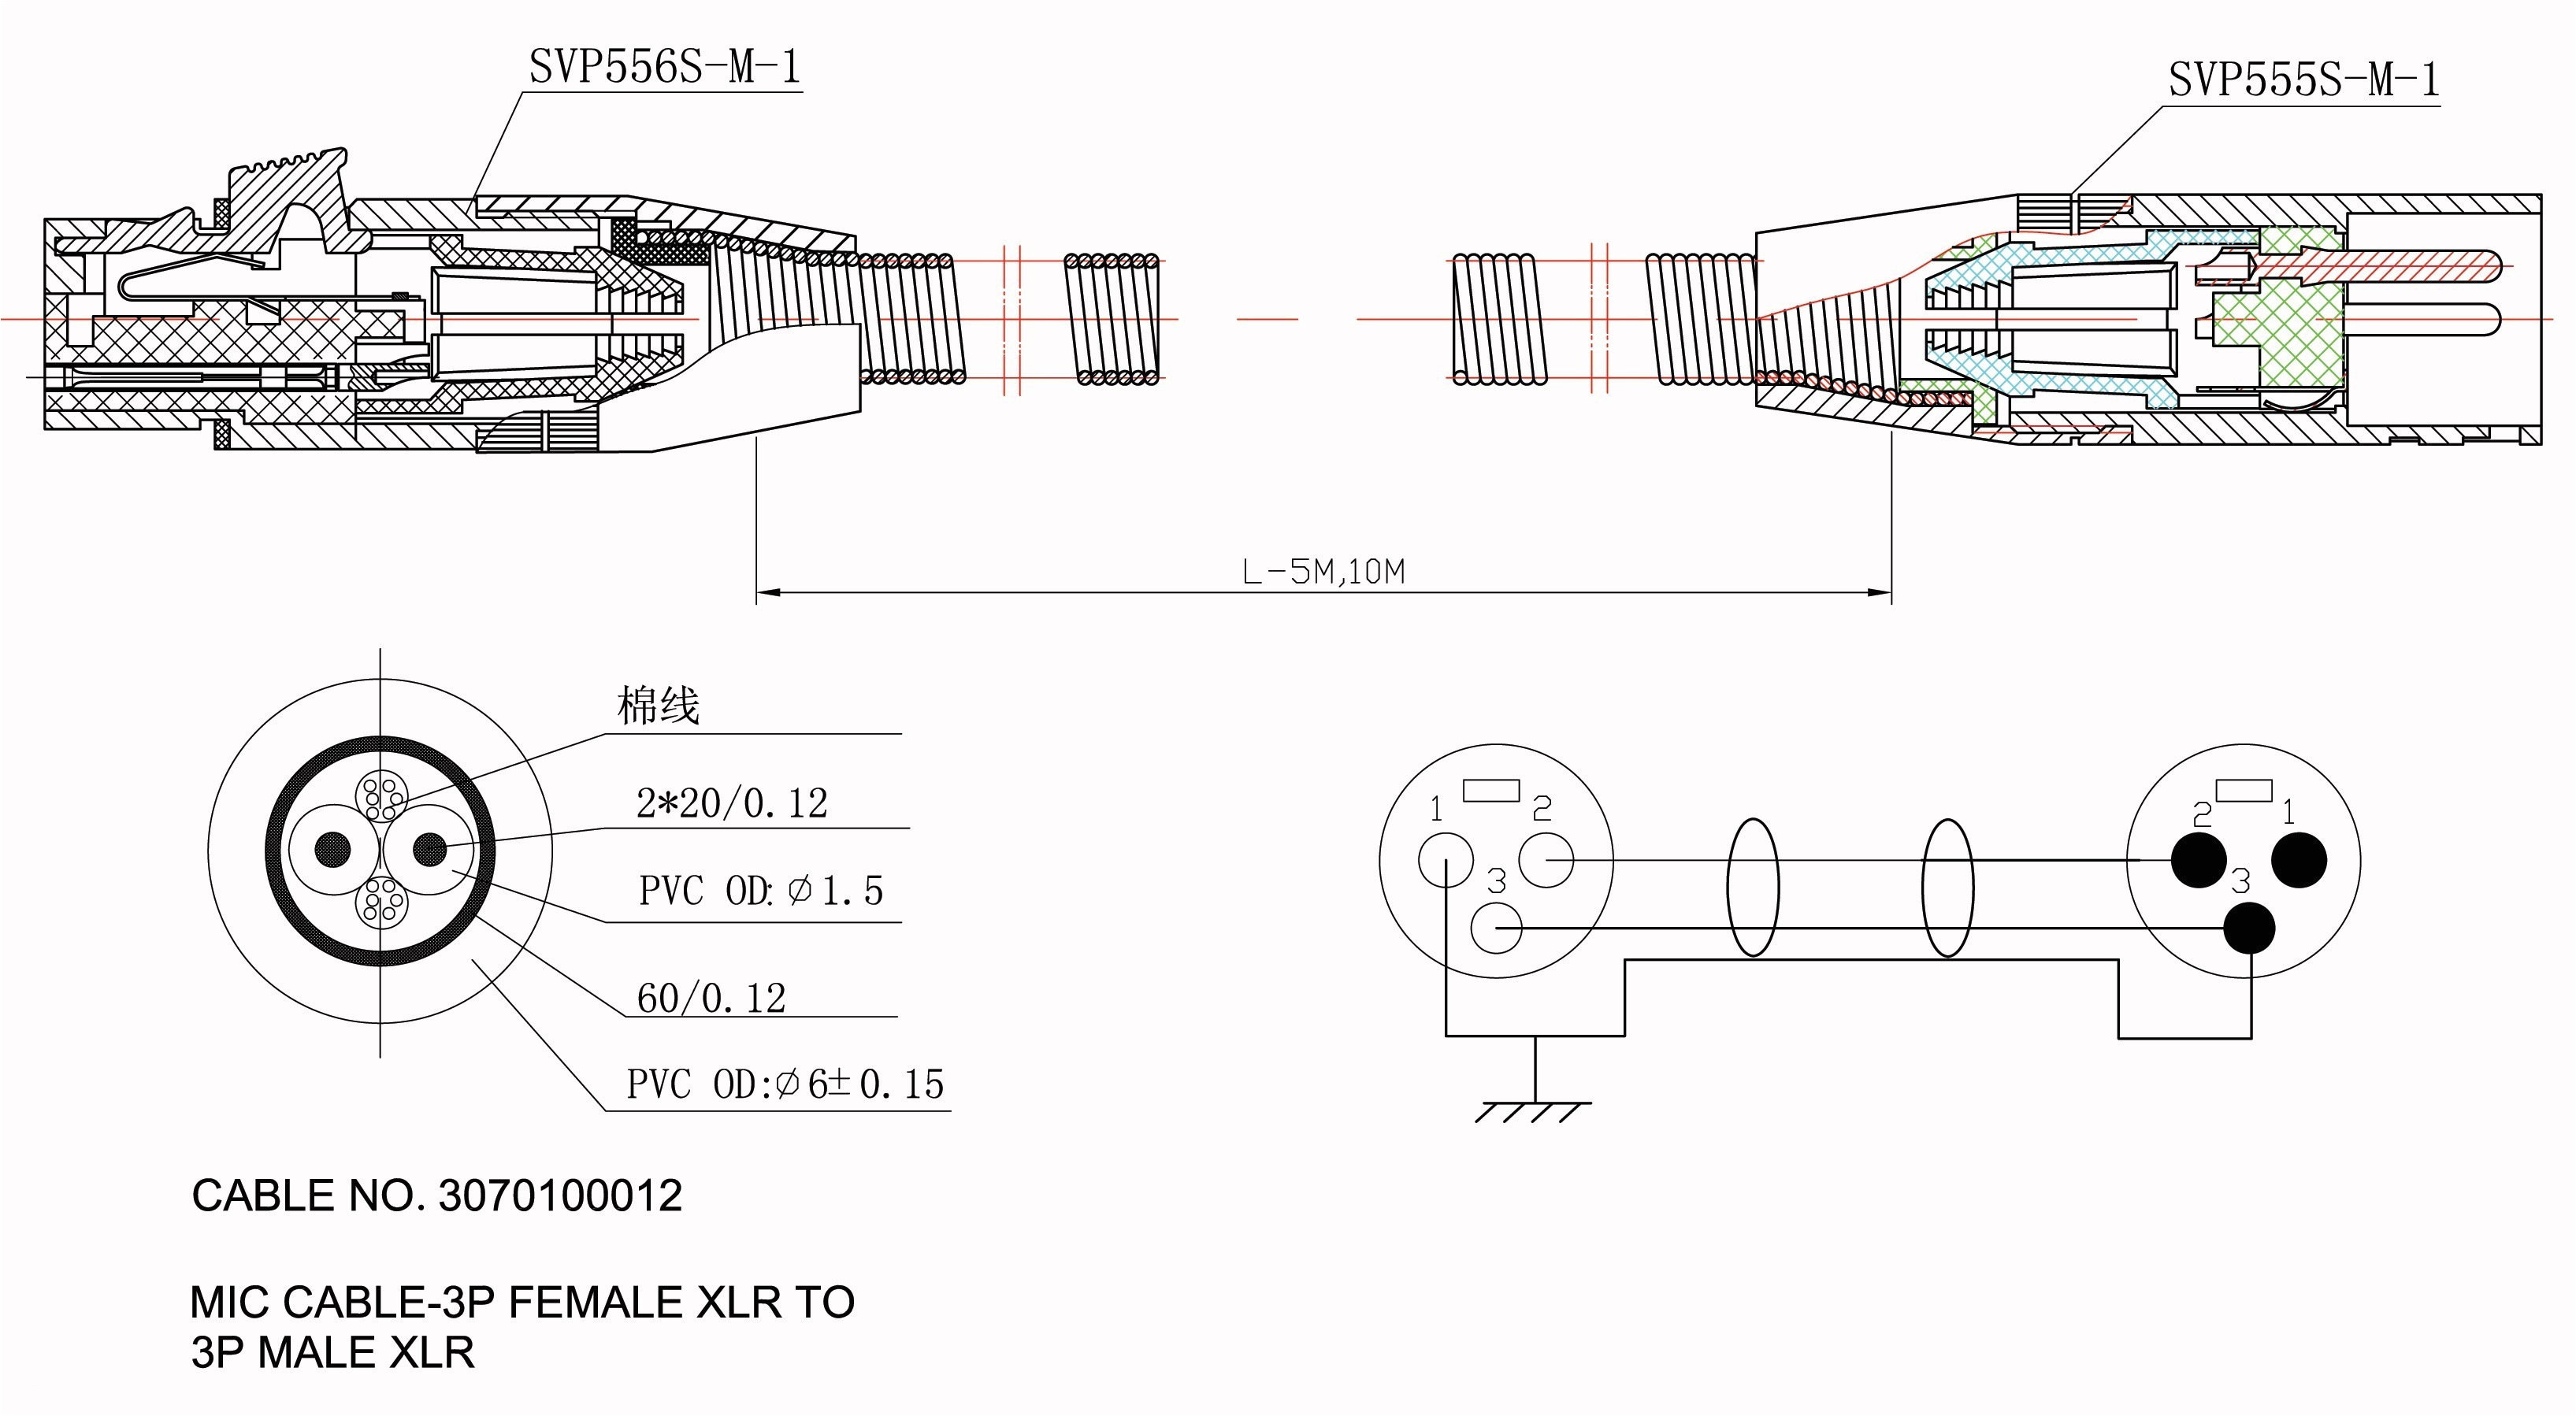 photo of wiring diagram for 220 volt baseboard heater heater wiring diagram 240v free downloads wiring